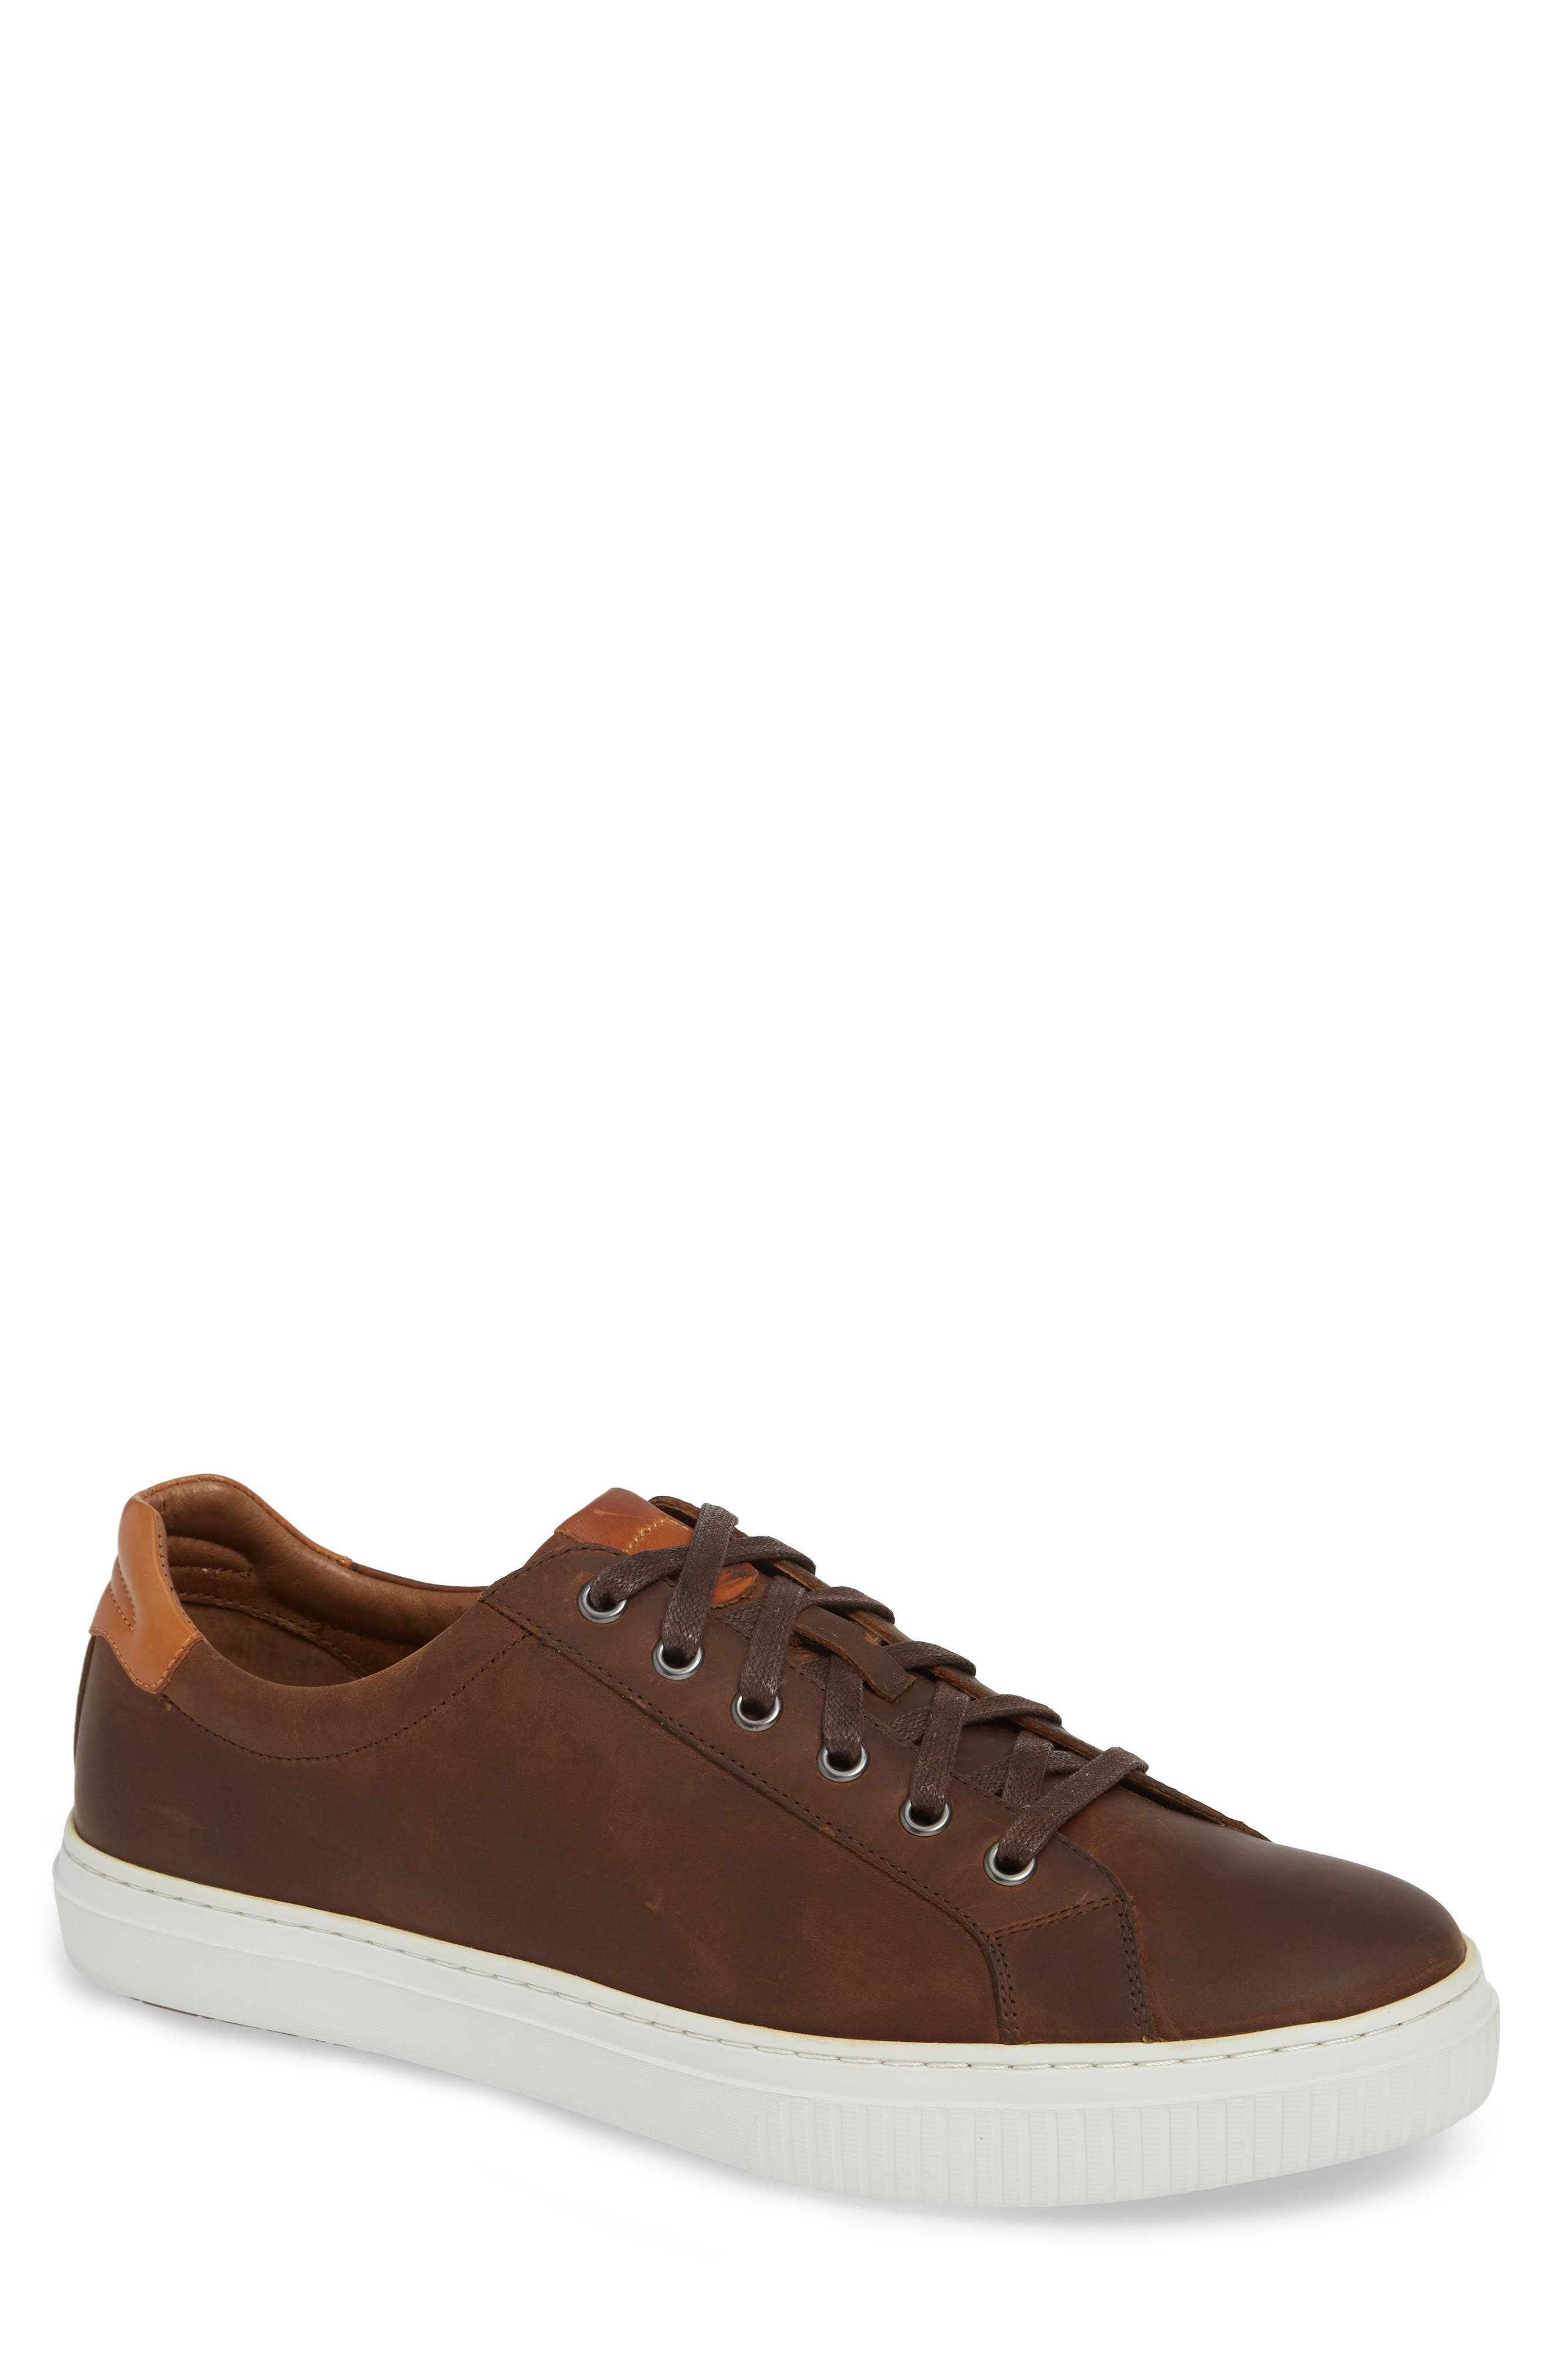 J&M 1850, Toliver Low Top Sneaker, Main thumbnail 1, color, TAN LEATHER